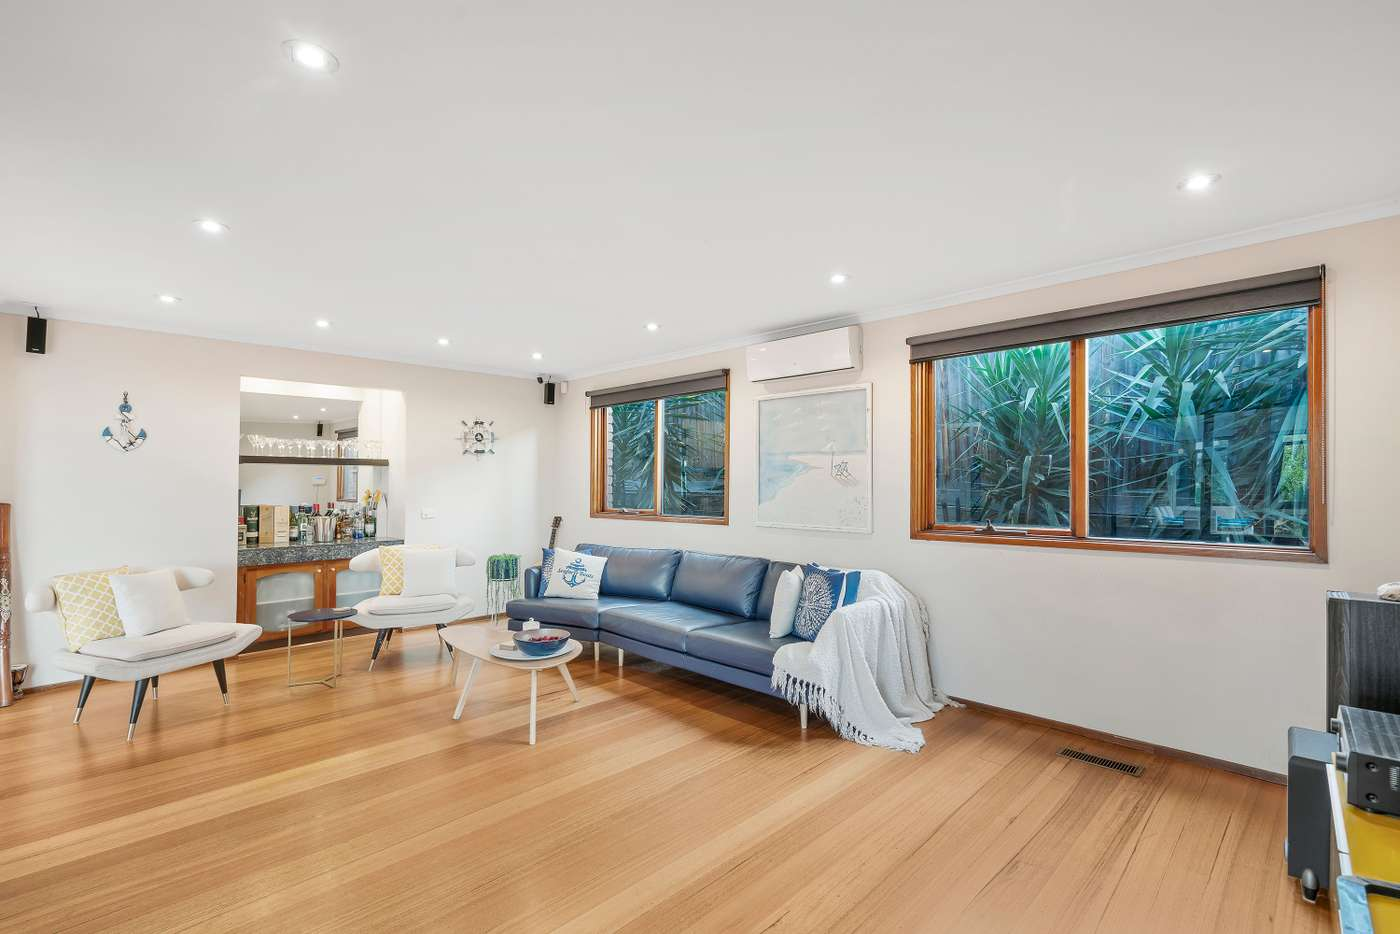 Sixth view of Homely house listing, 63 Haverbrack Drive, Mulgrave VIC 3170